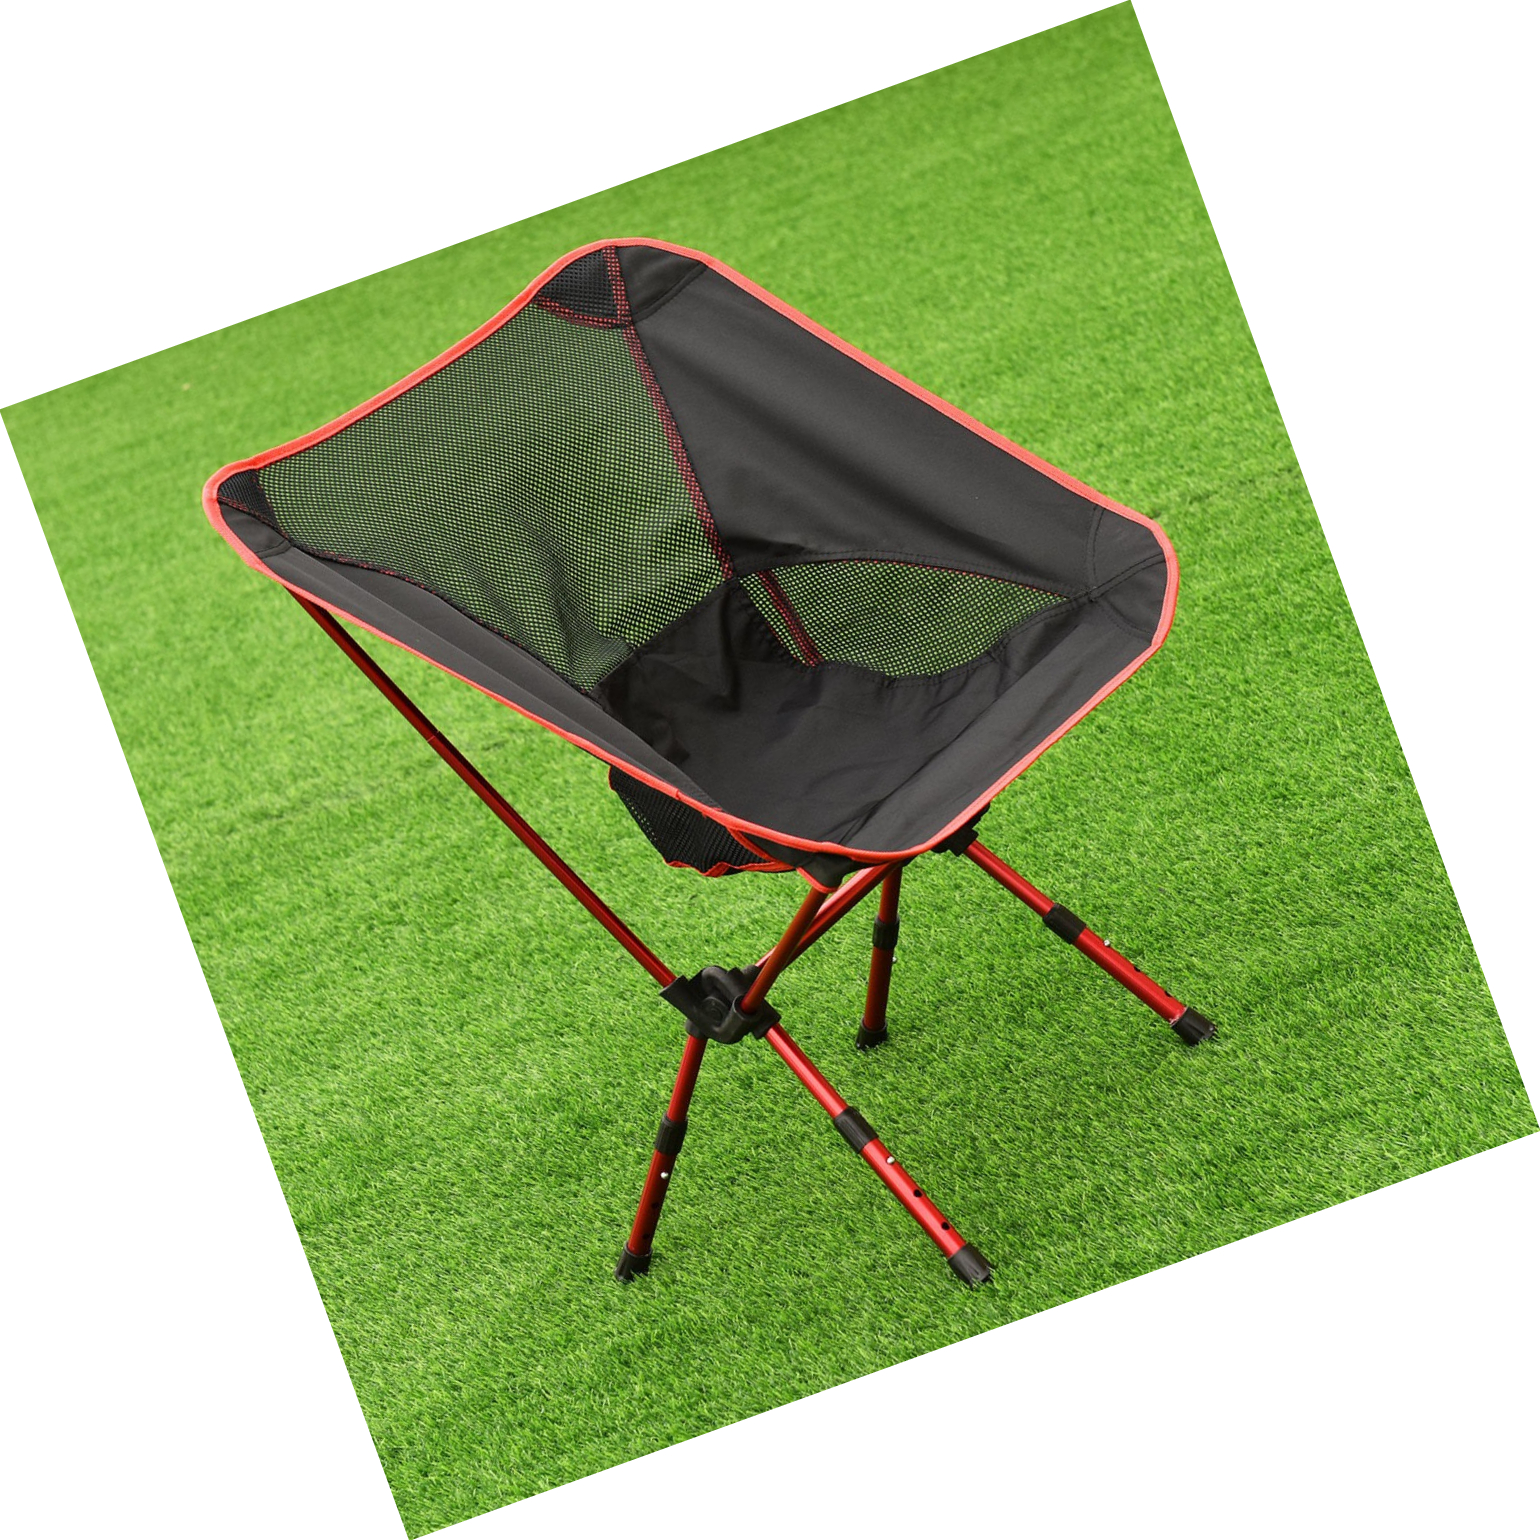 Details About Camping Chair Folding Beach Chairs Collapsible Lightweight Portable Red Foldable